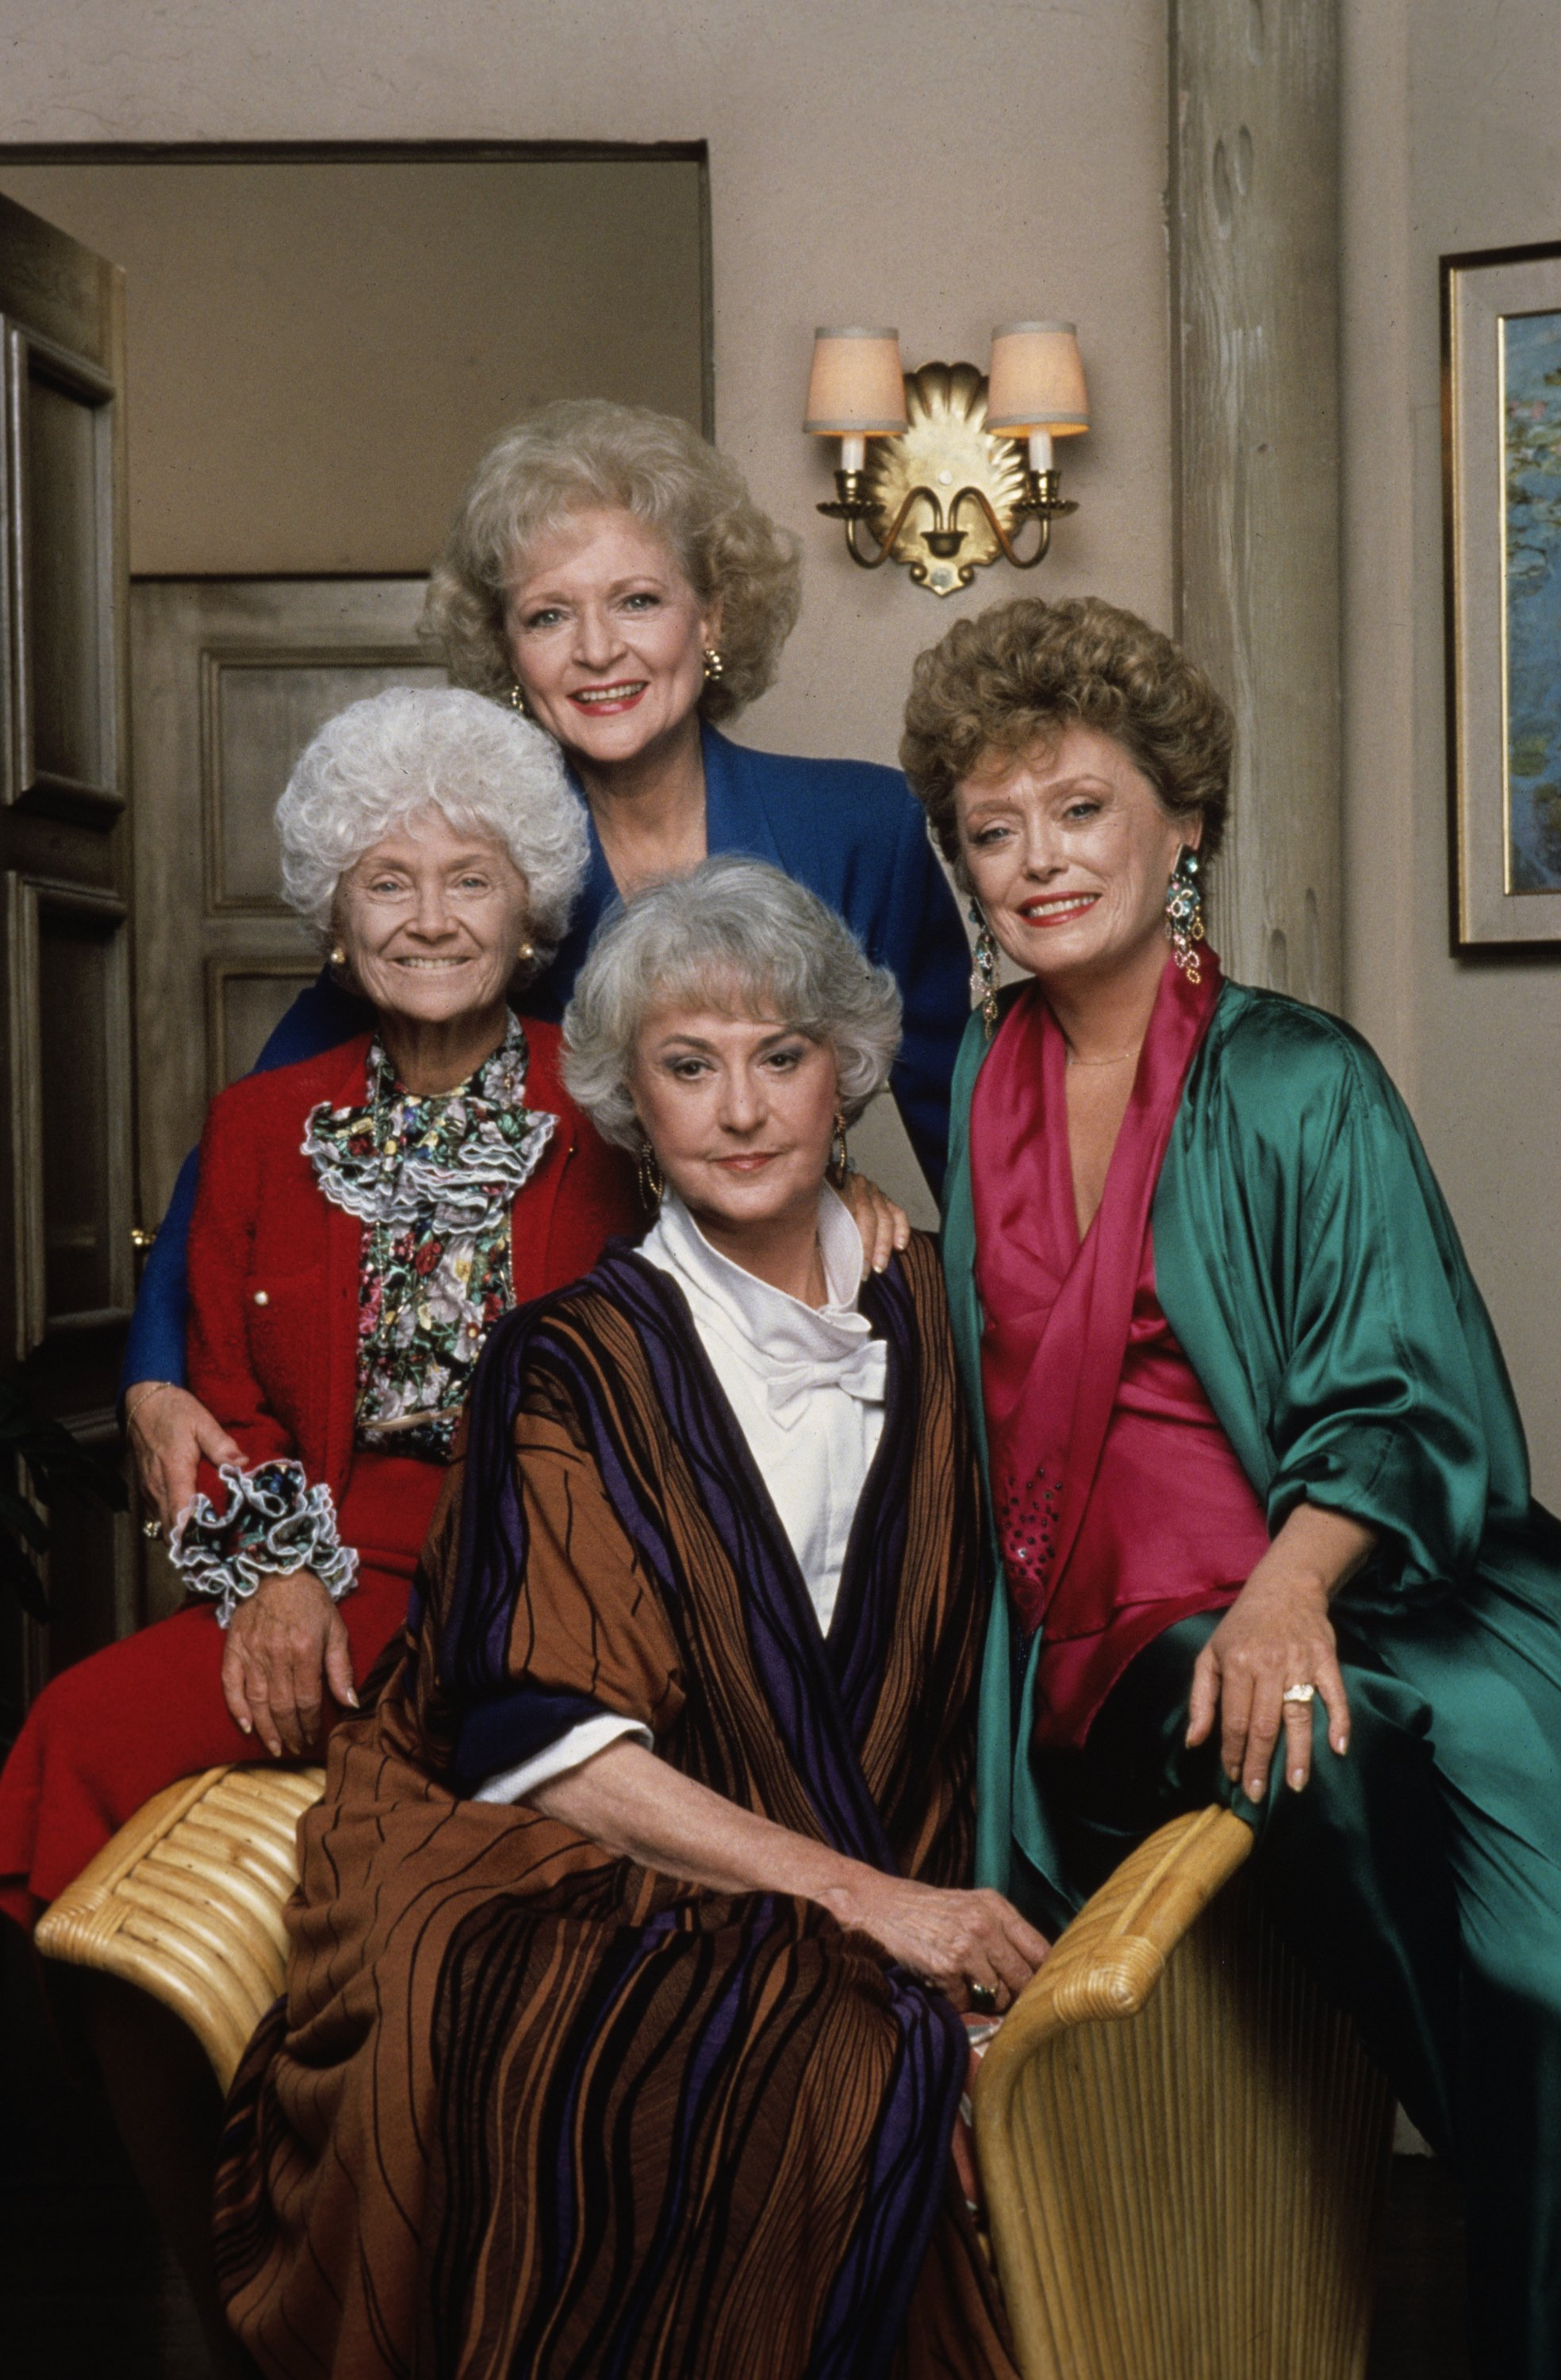 """Betty White as Rose; Estelle Getty as Sophia, Rue MClanahan as Blanche; and Bea Arthur as Dorothy in """"The Golden Girls."""""""